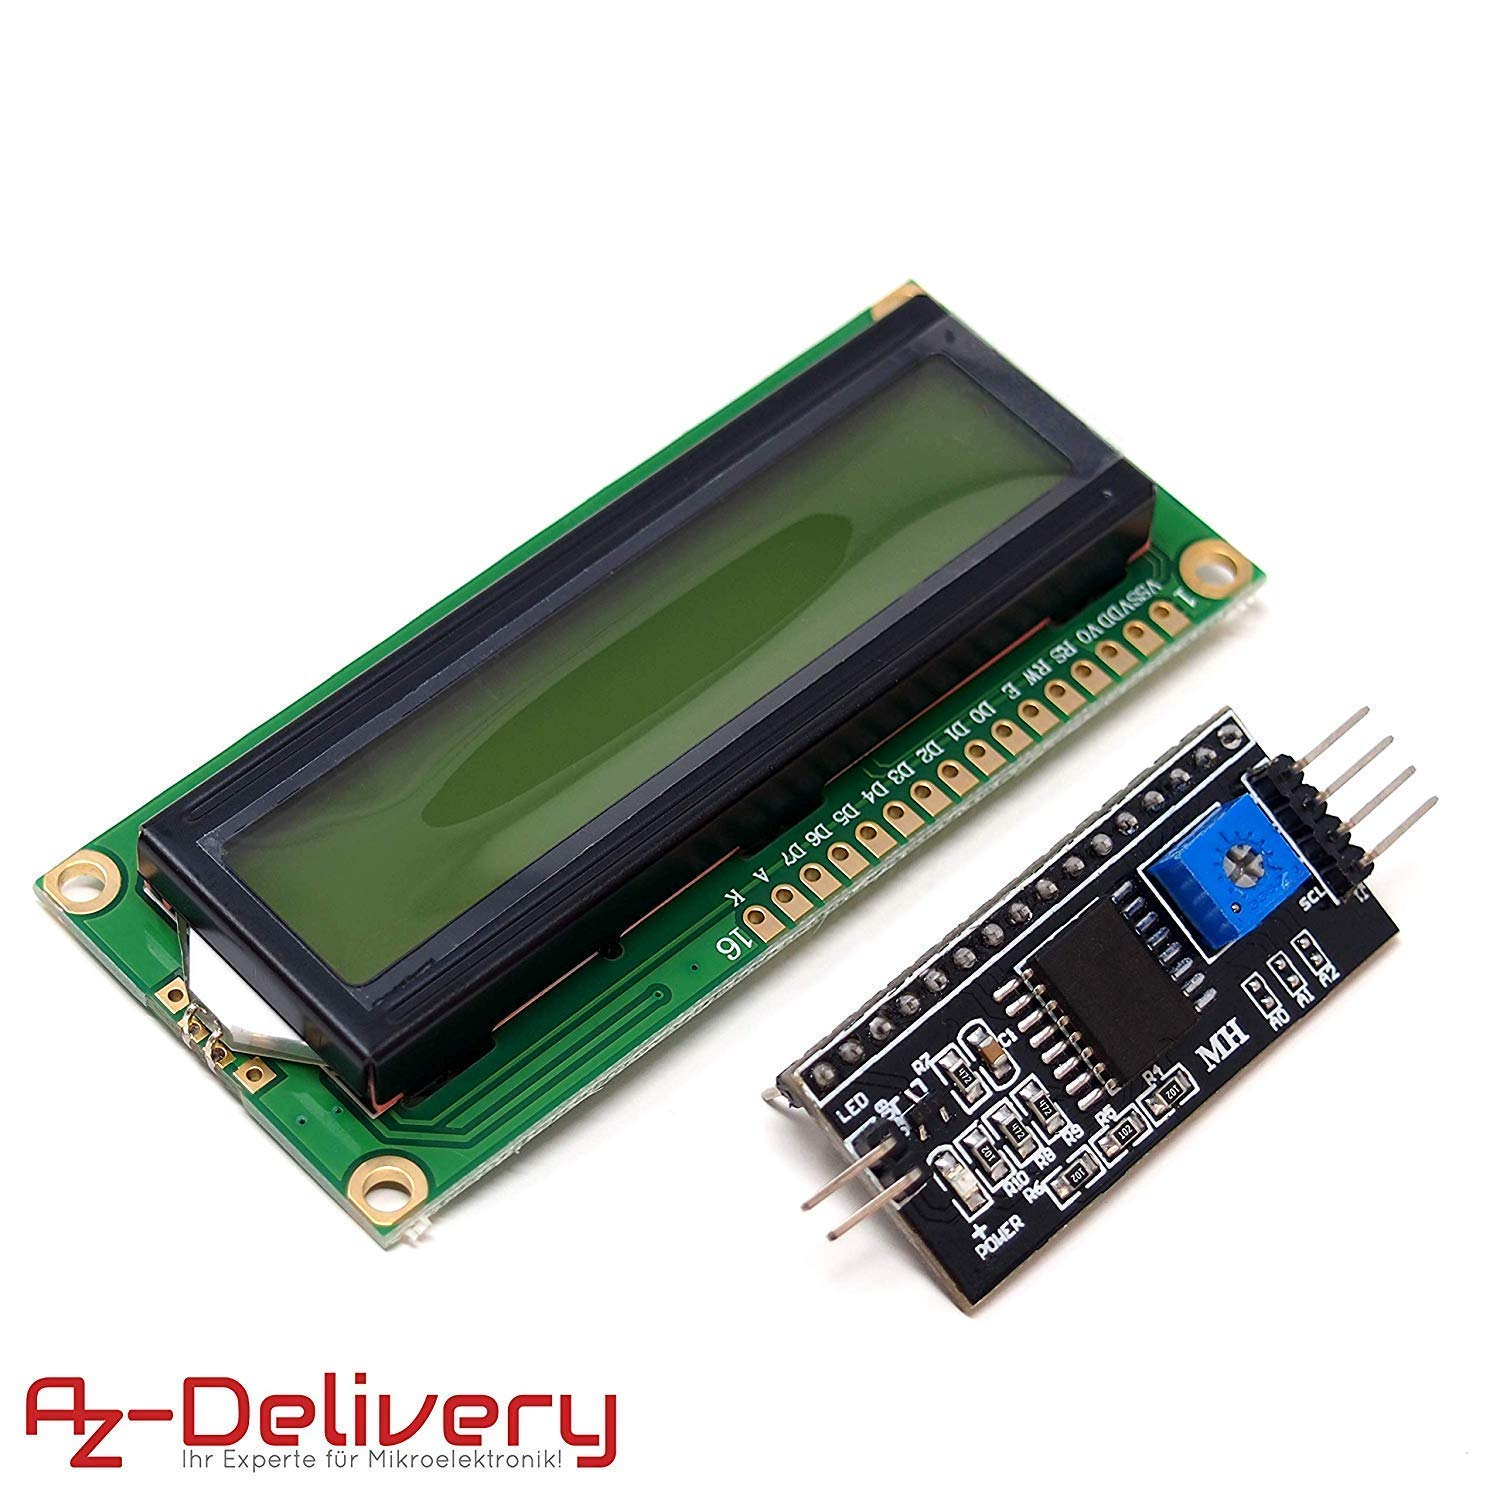 AZDelivery Modulo Pantalla LCD Display Verde HD44780 1602 con interfaz I2C 16x2 caracteres compatible con Arduino con E-book incluido!